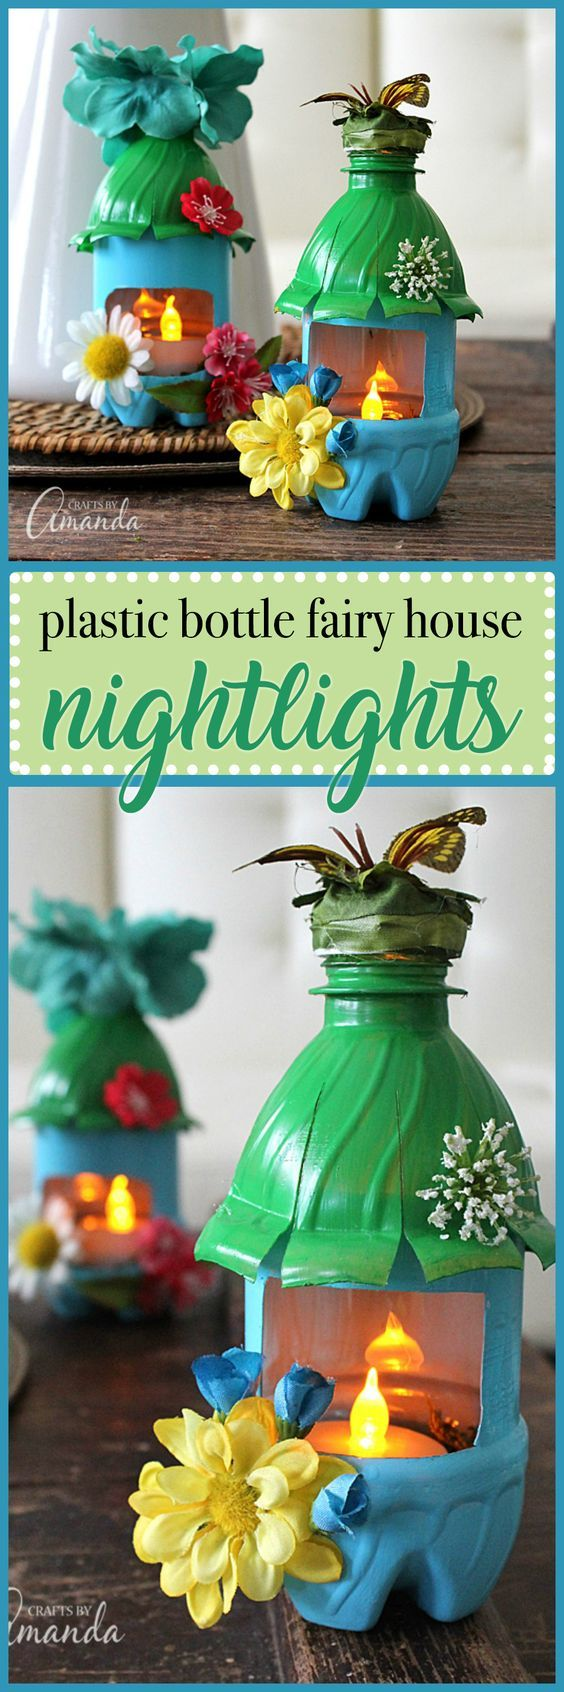 Turn empty plastic water bottles into adorable